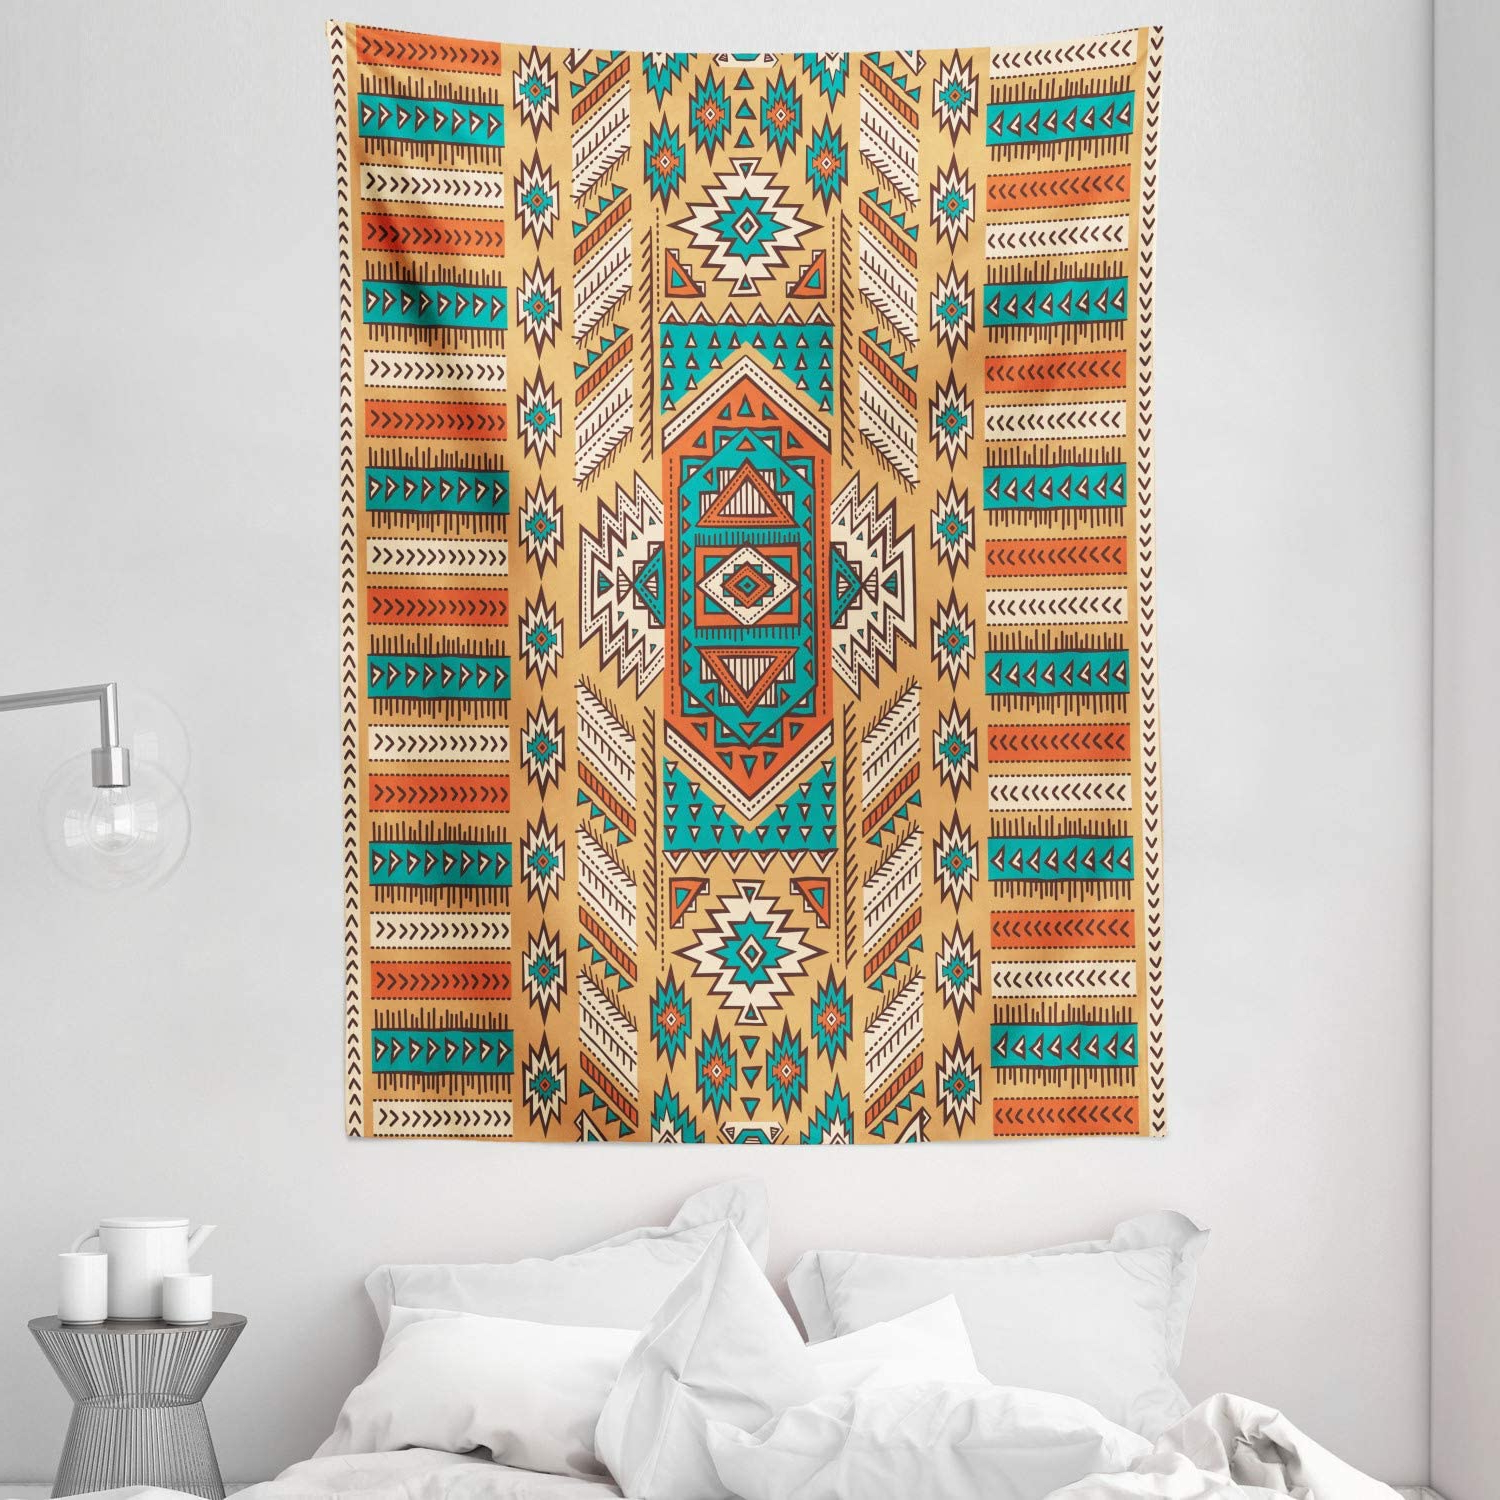 """Blended Fabric Southwestern Bohemian Wall Hangings With Regard To Newest Ambesonne Tribal Tapestry, Secret Tribe Pattern In Bohemian Style, Wall Hanging For Bedroom Living Room Dorm Decor, 40"""" X 60"""", Apricot Orange (View 20 of 20)"""